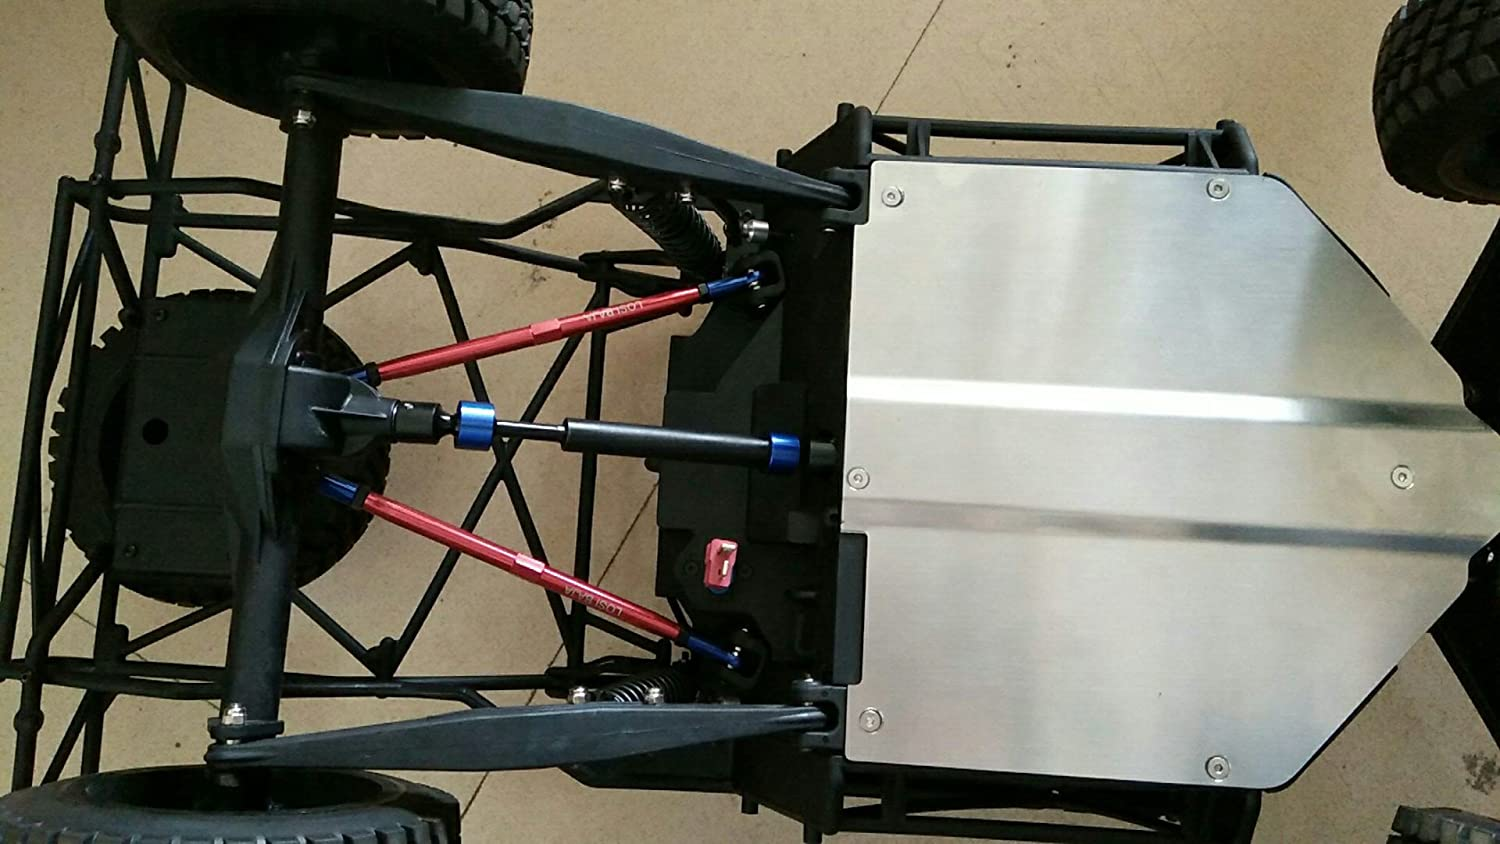 1/10 Losi Baja Rock Rey Chassis Stainless Steel Skid Plate Chassis Protect Armor Raidenracing